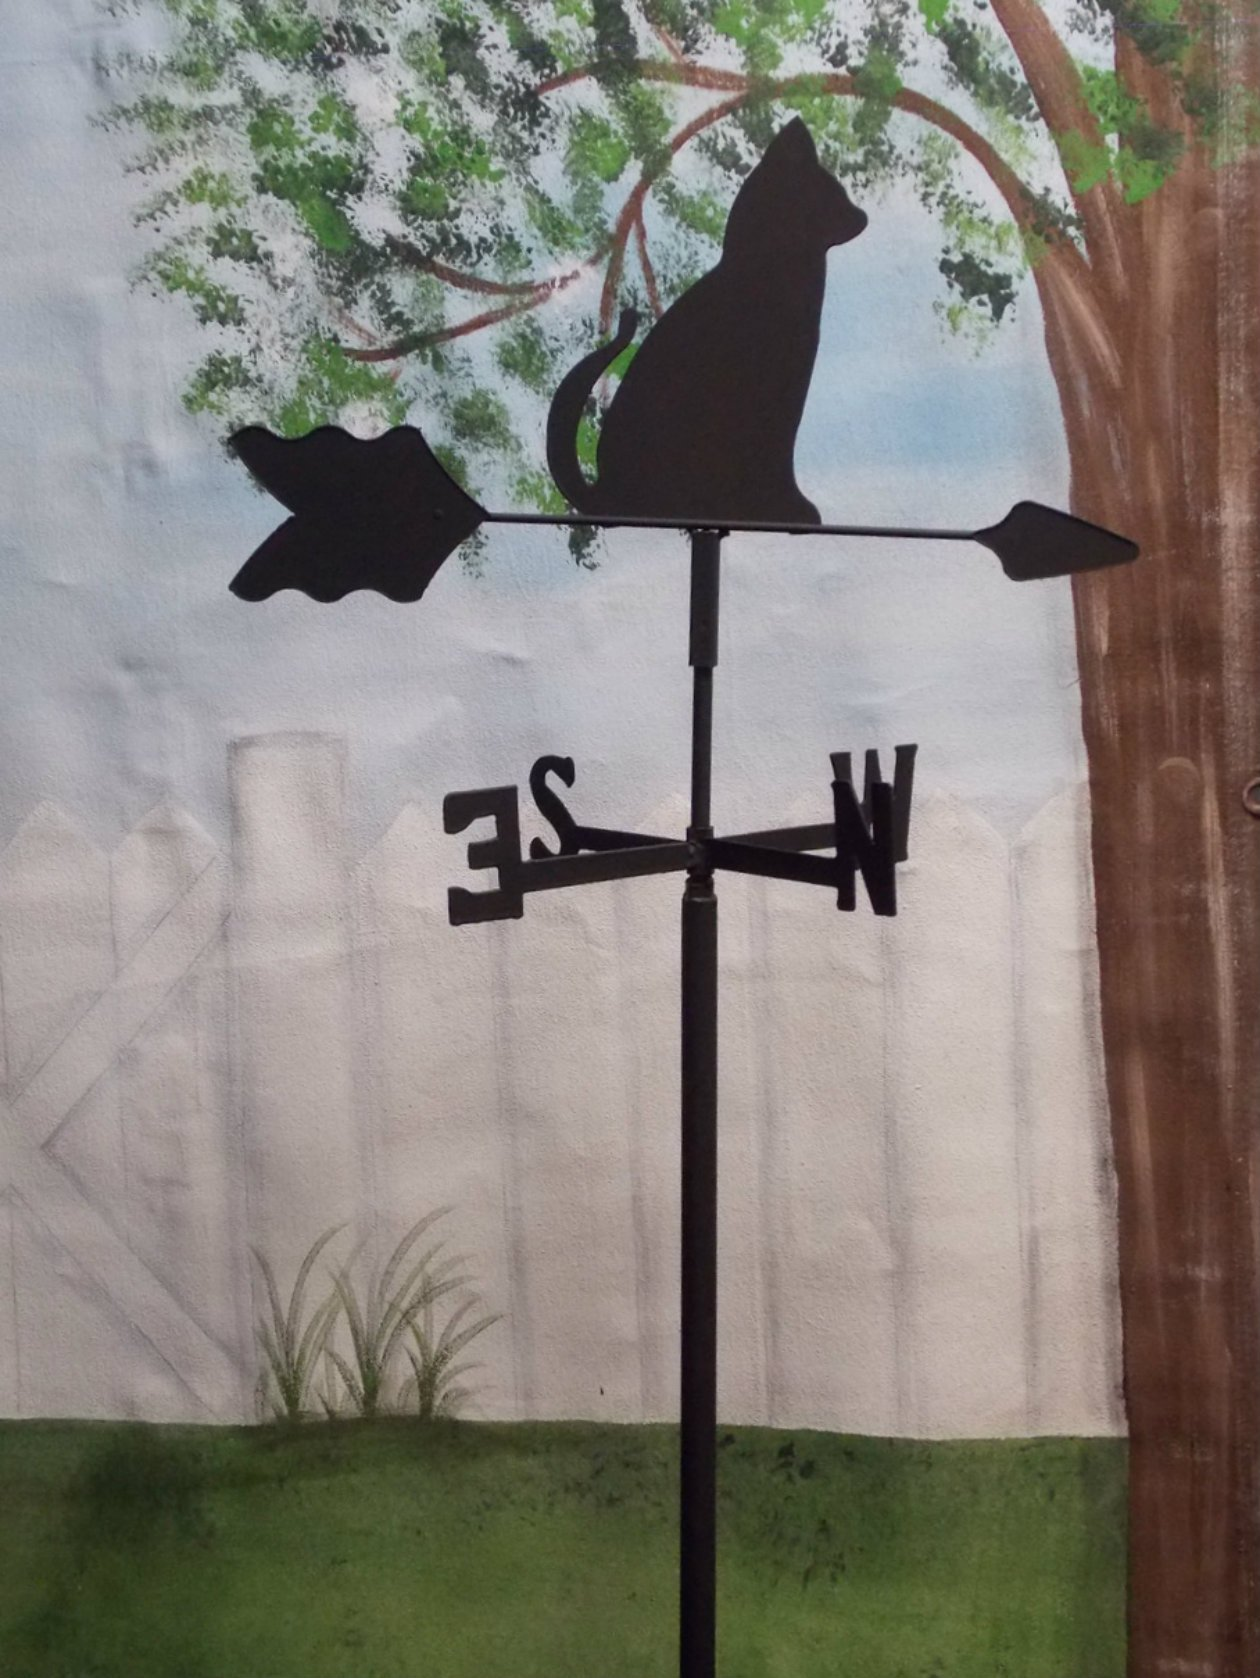 Cat Garden Style Weathervane Wrought Iron by The Lazy Scroll